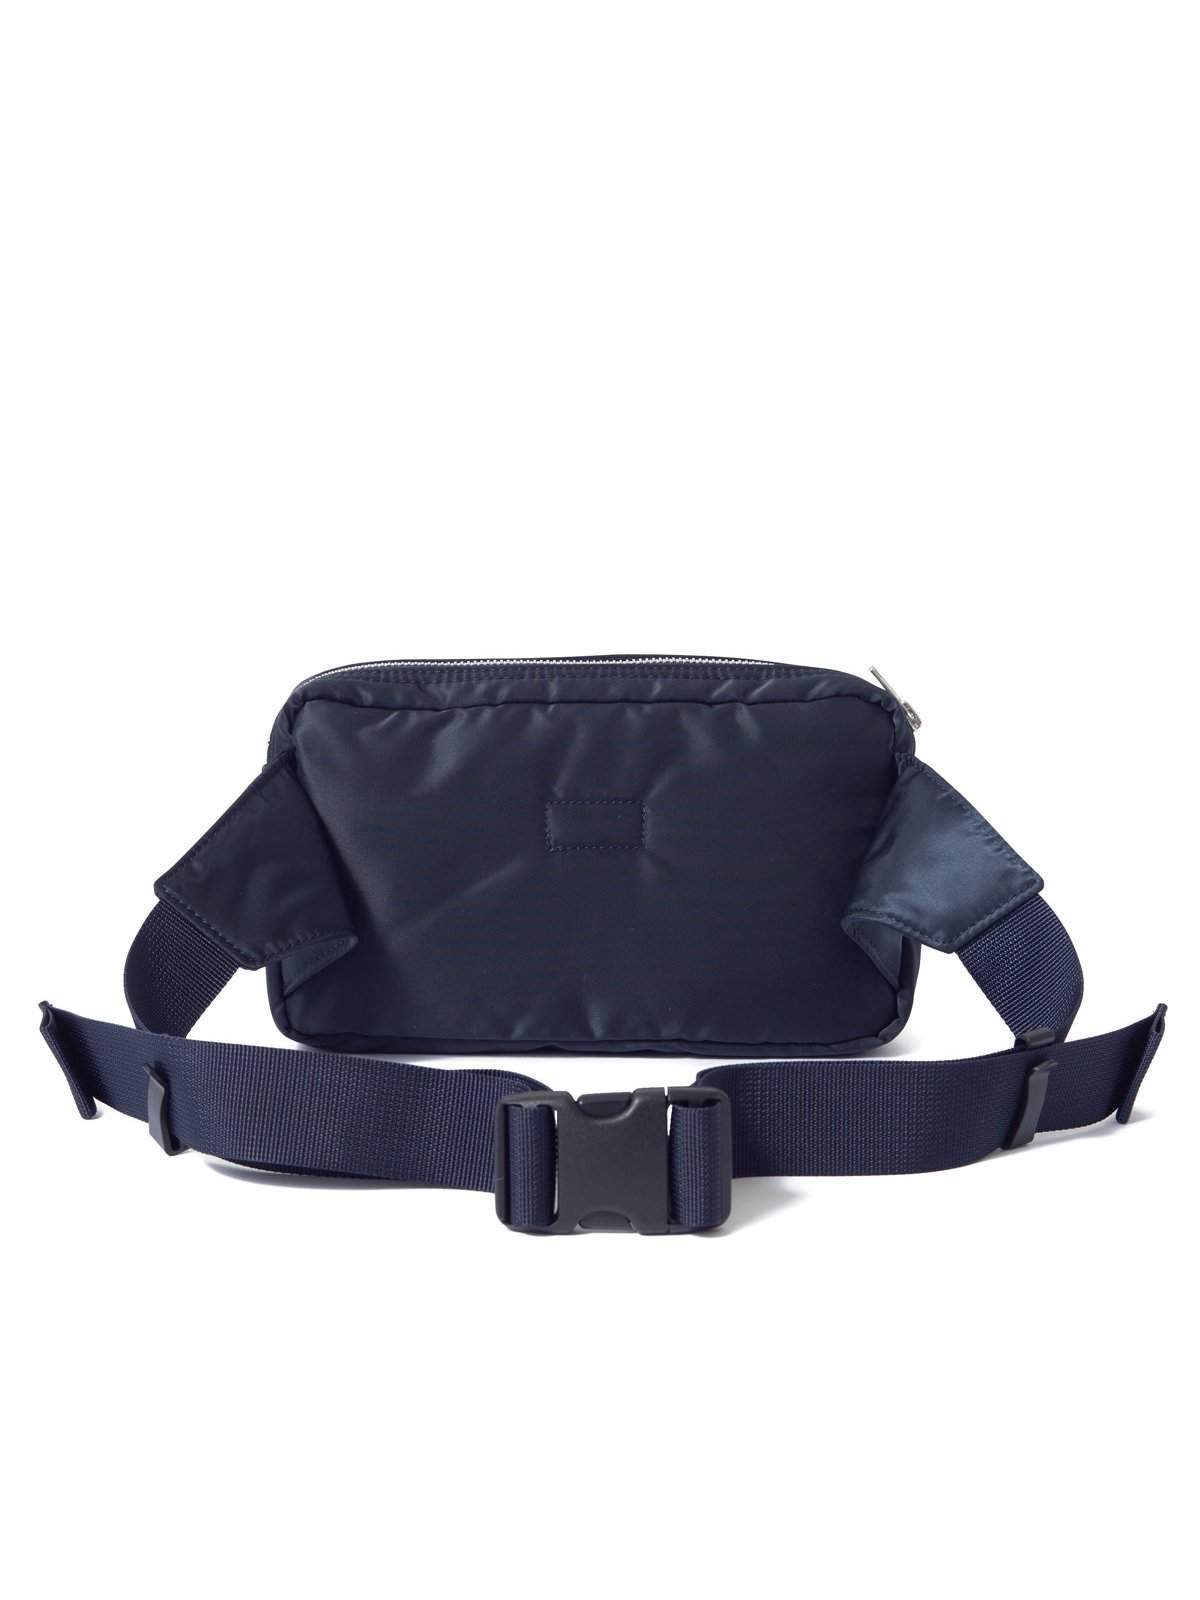 Porter-Yoshida   Co. Tanker Original Waist Bag Navy - MORE by Morello - 16c1de8a97e28